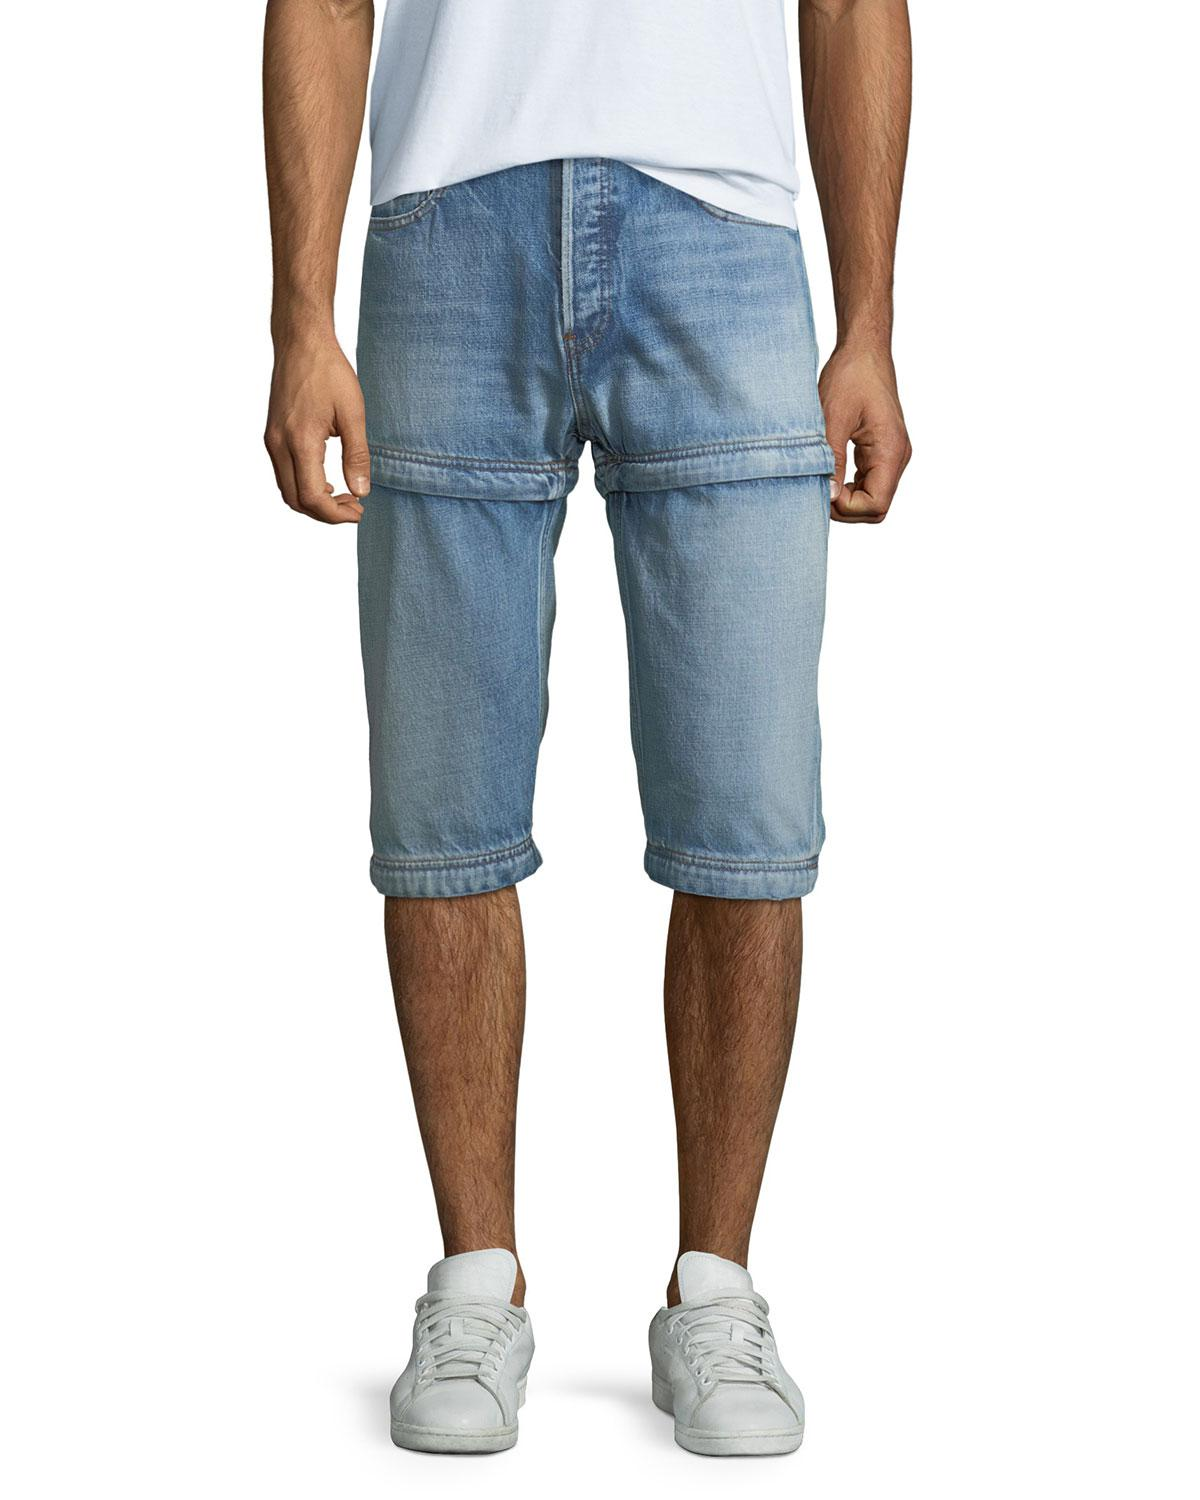 92e2c13a92 Nordstrom is selling jeans caked in fake dirt for hundreds of .